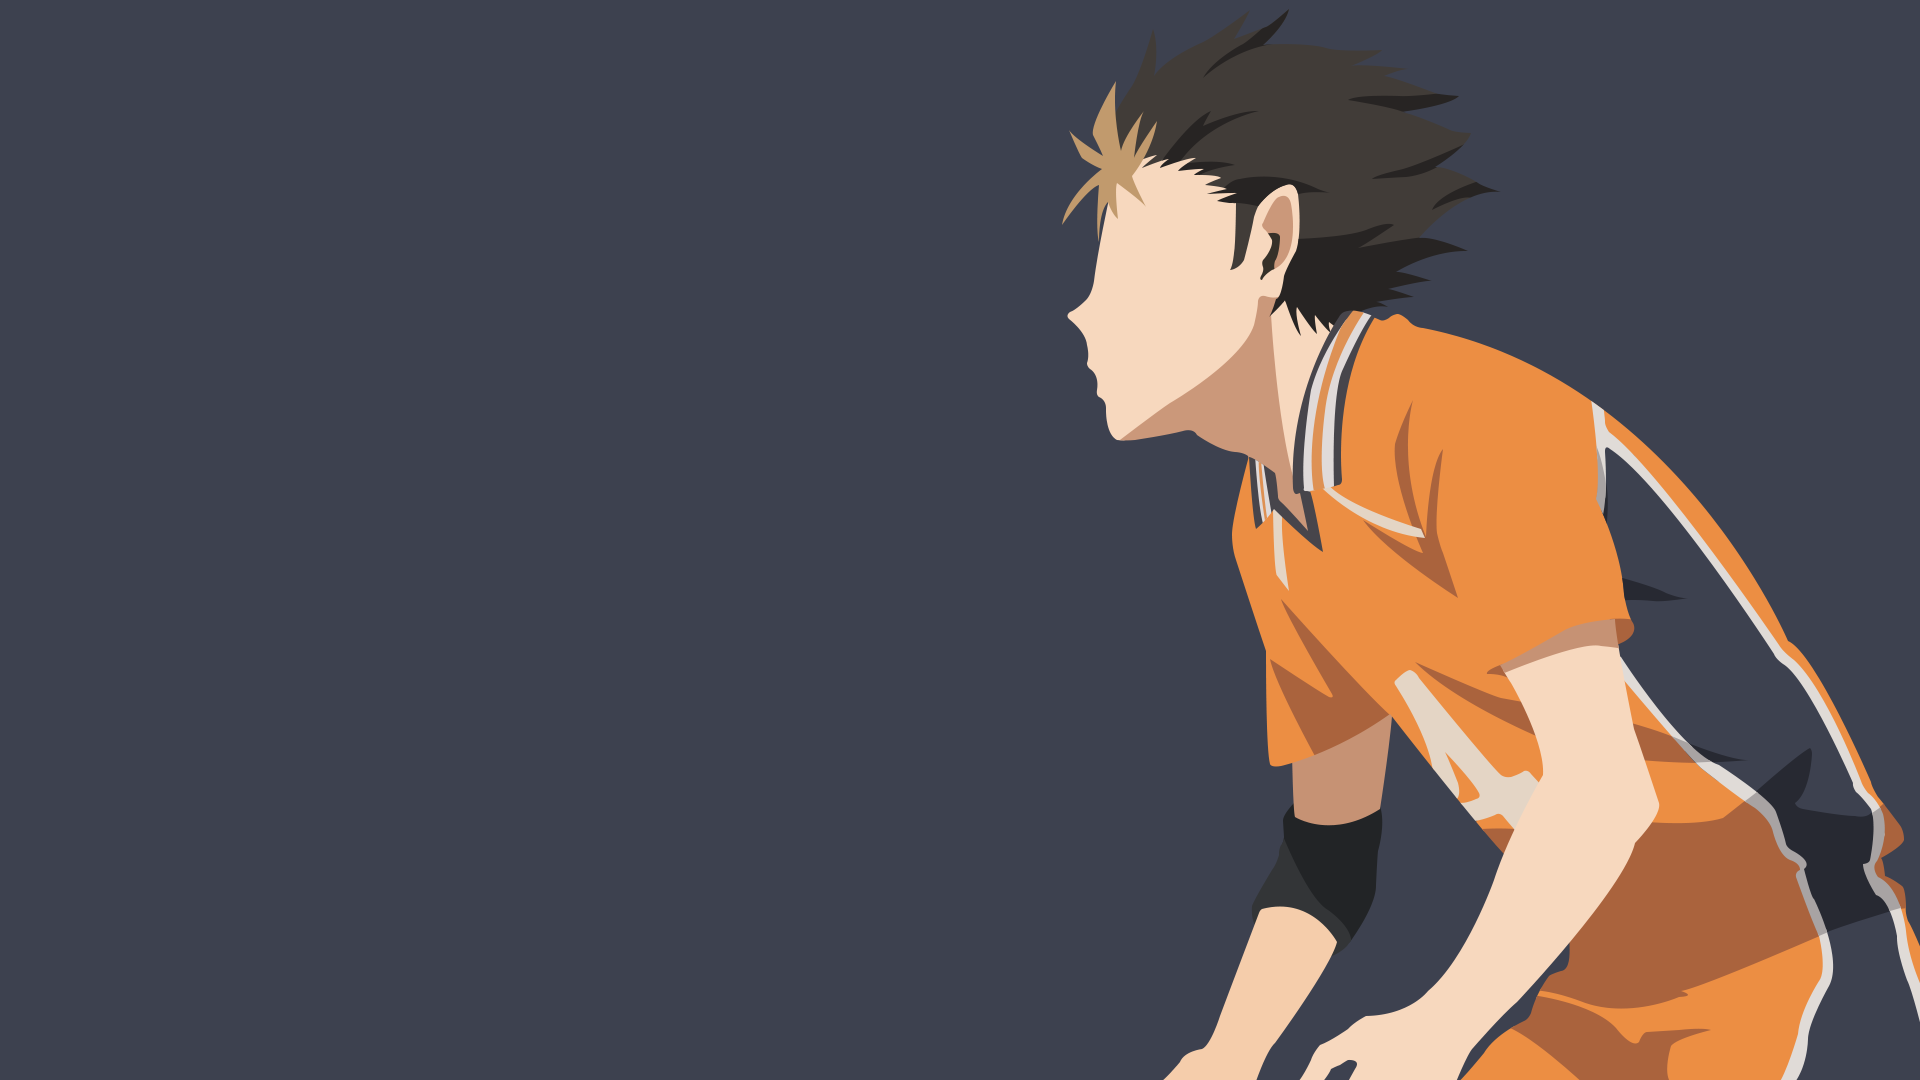 Haikyuu Desktop Design Wallpapers Wallpaper Cave